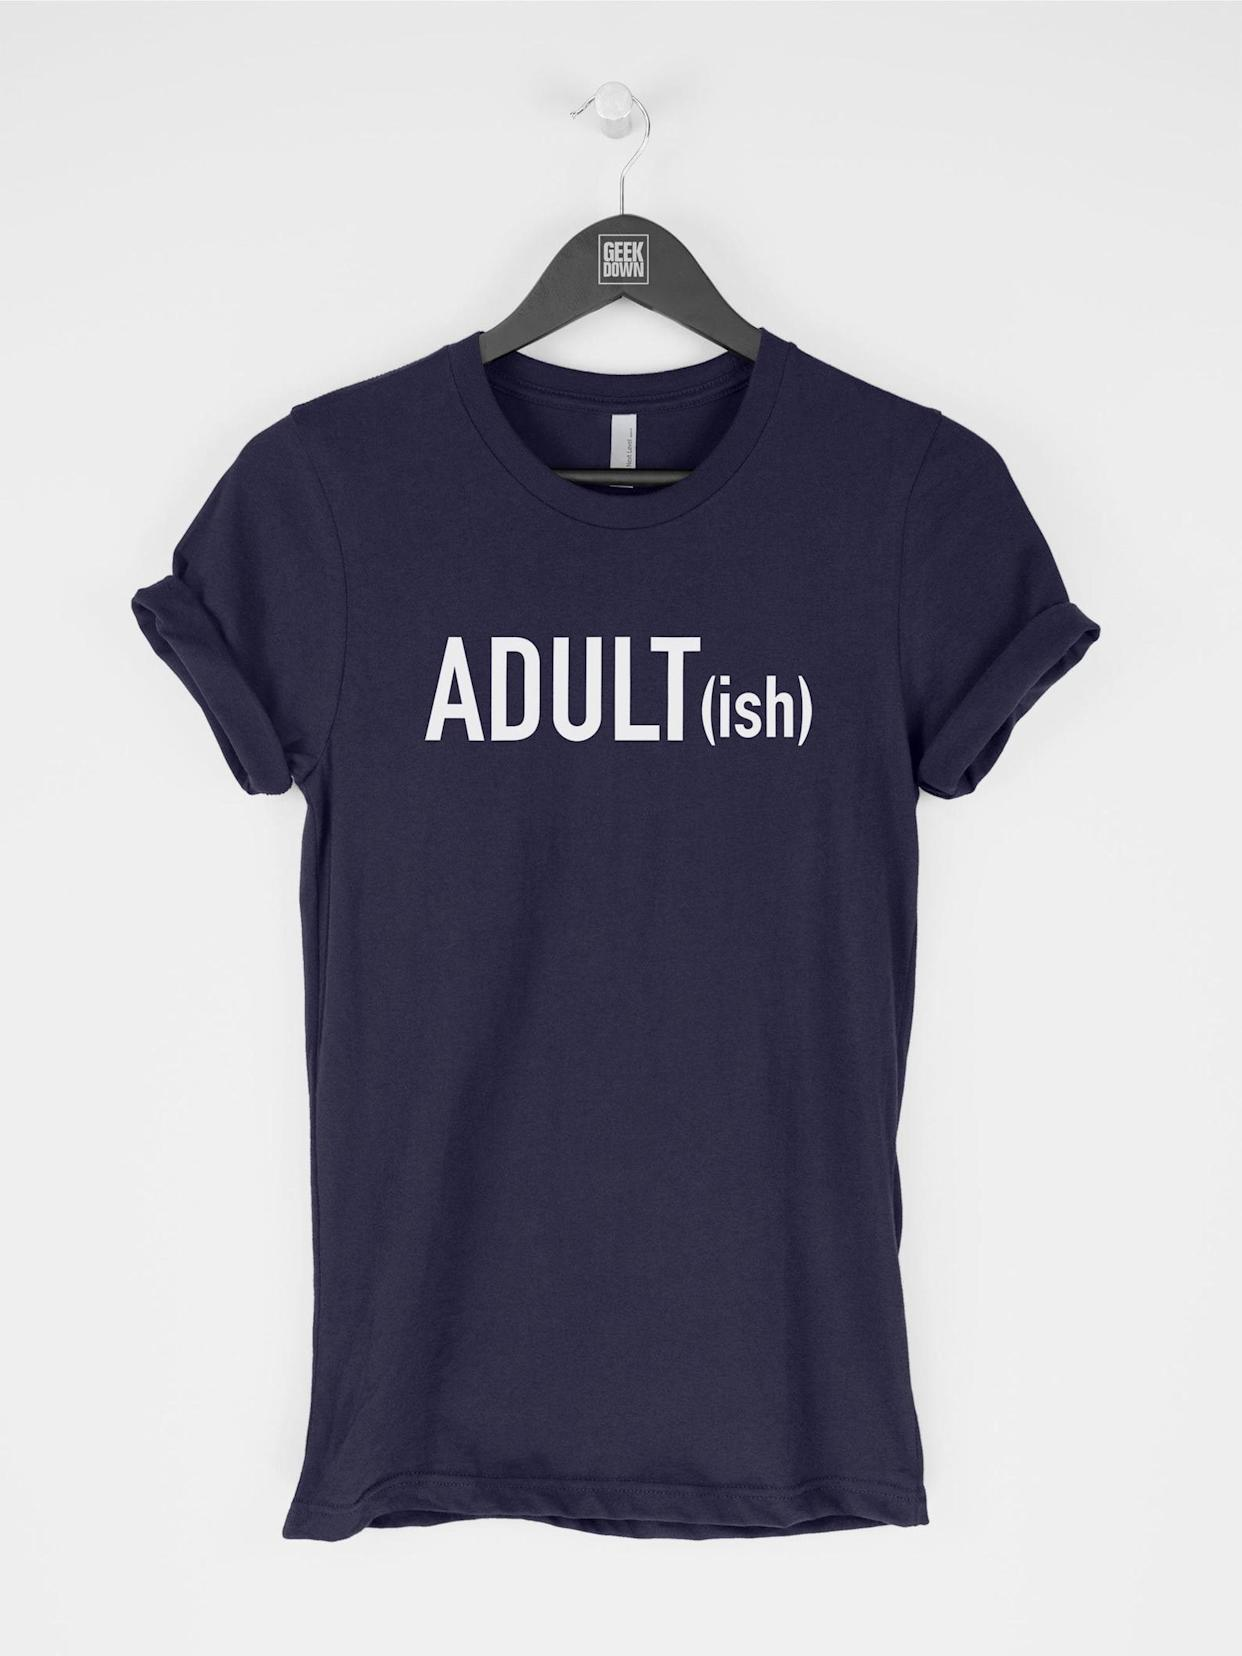 Adultish T-Shirt, Unisex Crewneck T-shirt, Graphic Tee, Funny Saying T-shirt, Gift for Adults